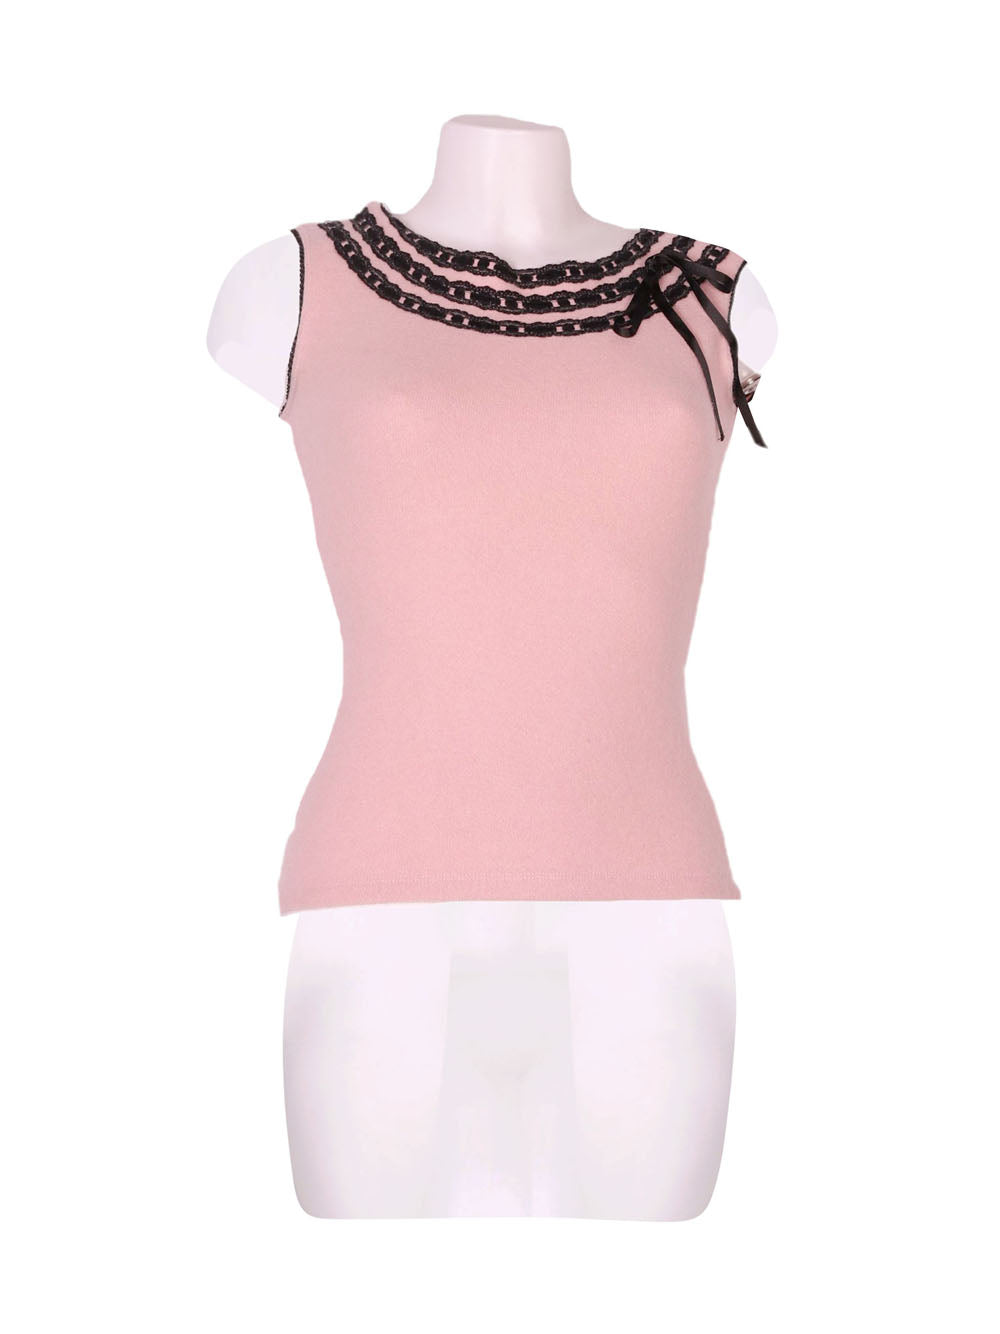 Front photo of Preloved ARIA PURA Pink Woman's sleeveless top - size 8/S